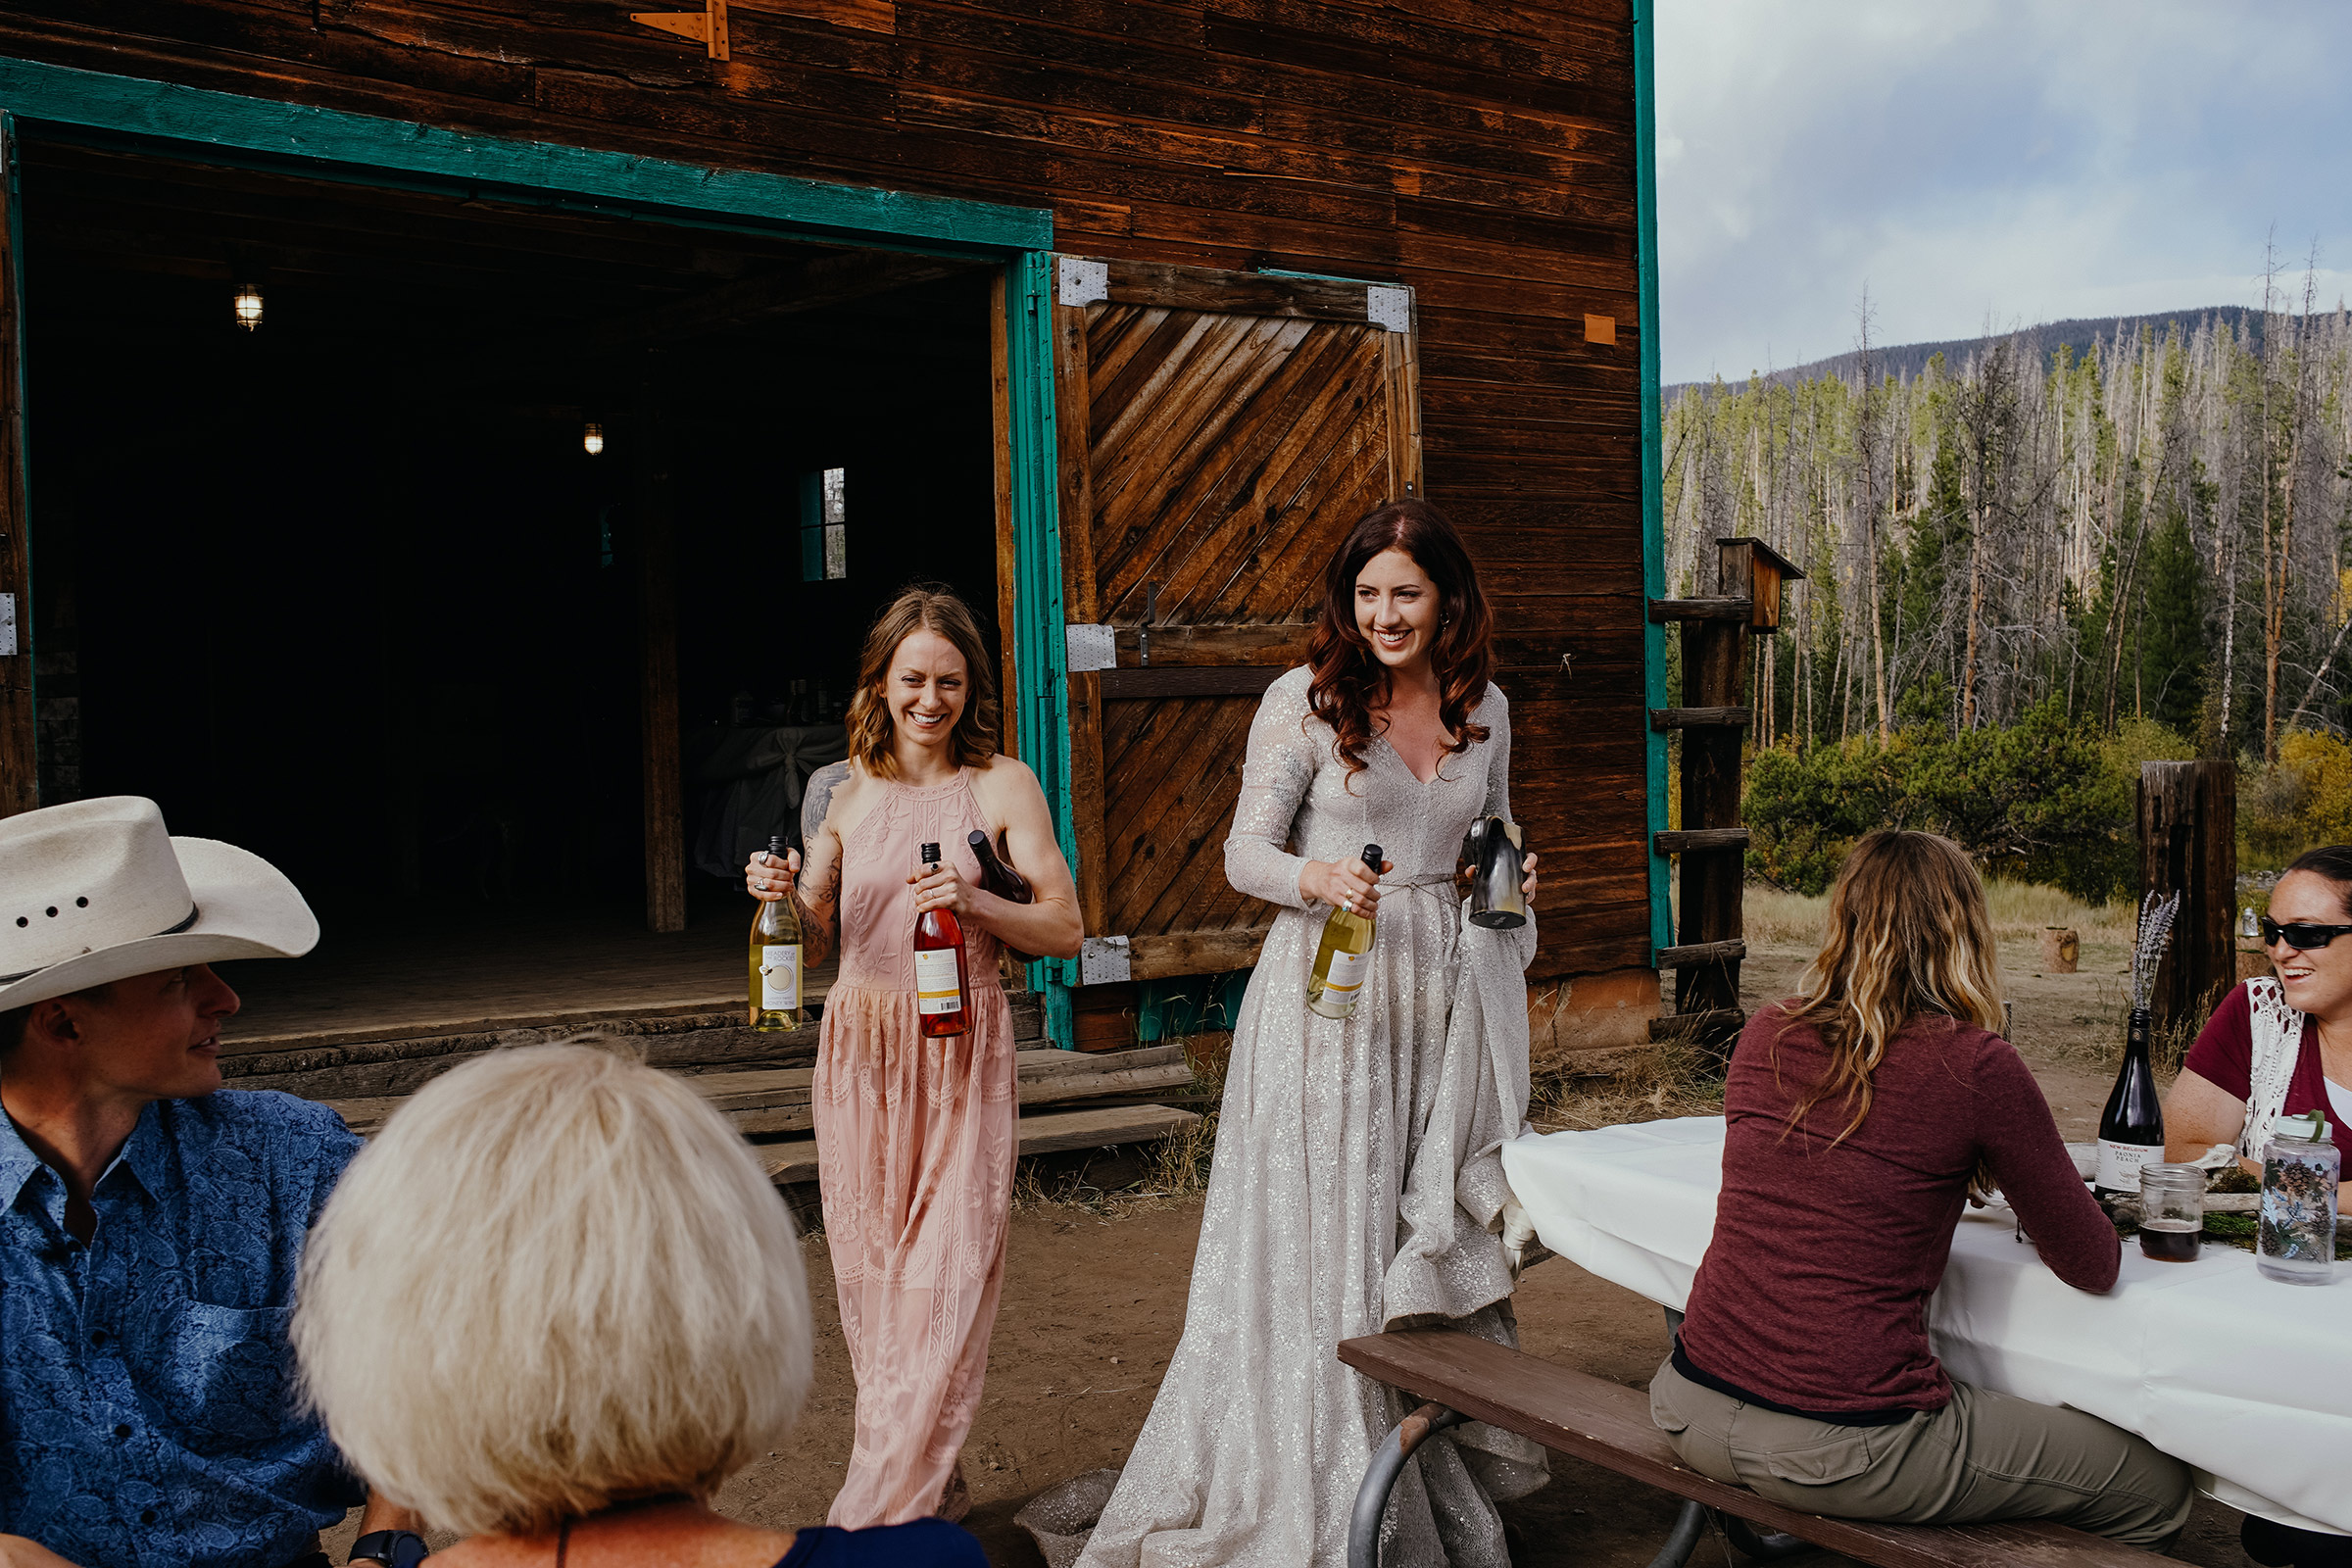 bride-and-bridesmaid-holding-wine-double-a-barn-grand-lake-colorado-raelyn-ramey-photography-595.jpg